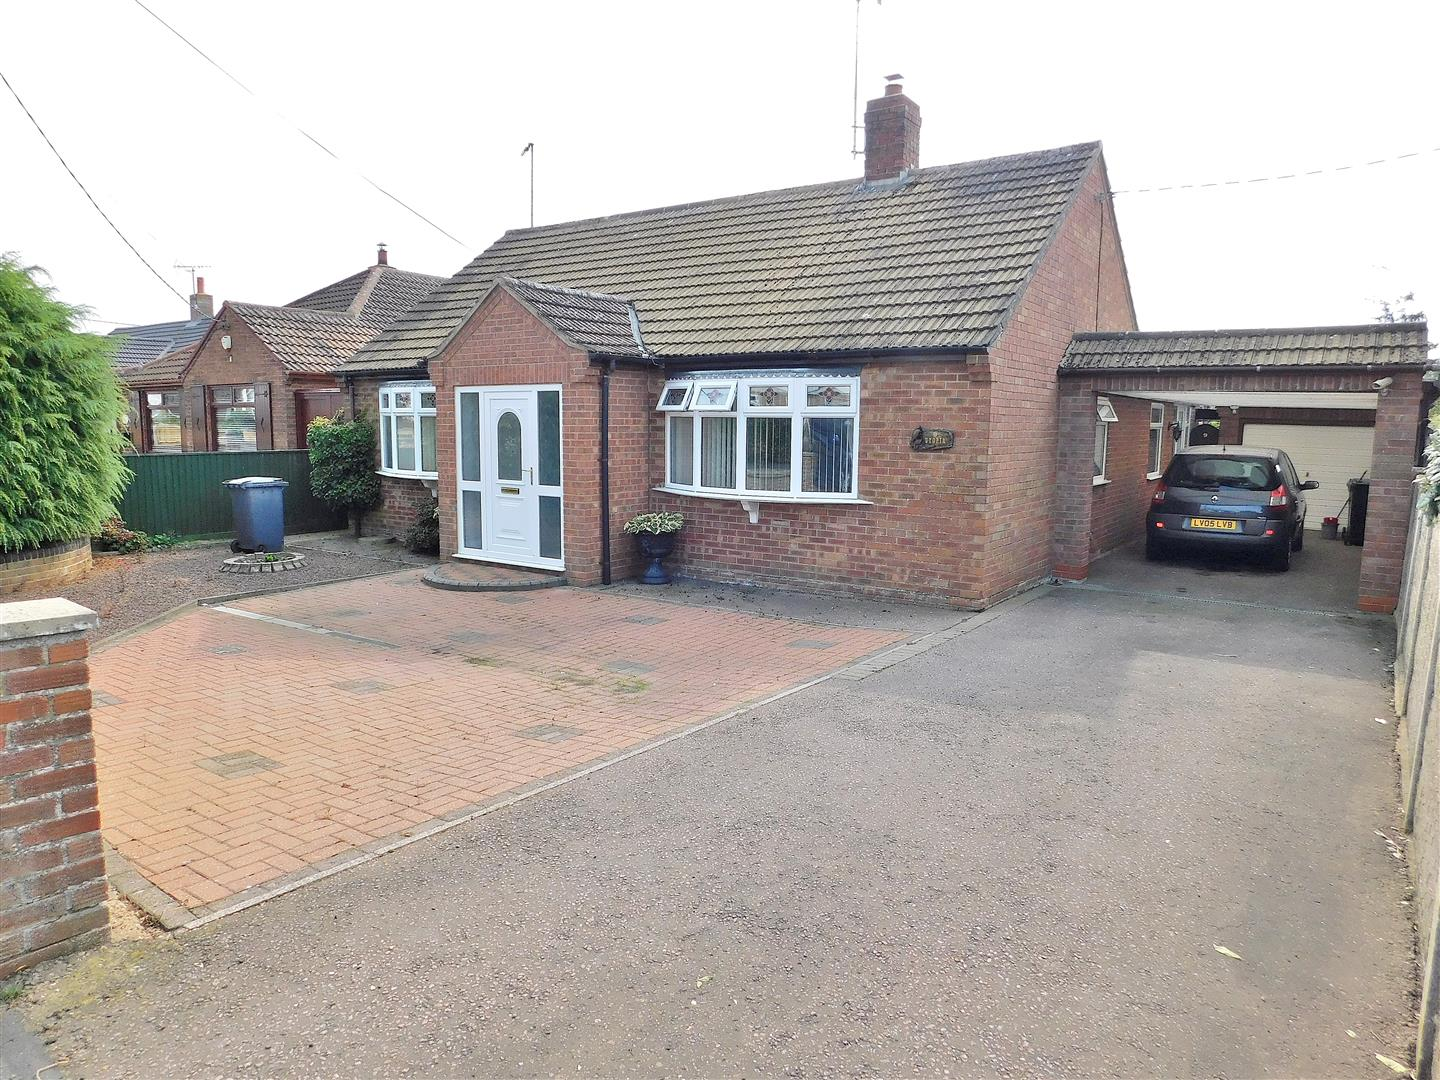 3 bed detached bungalow for sale in King's Lynn, PE33 0QG - Property Image 1